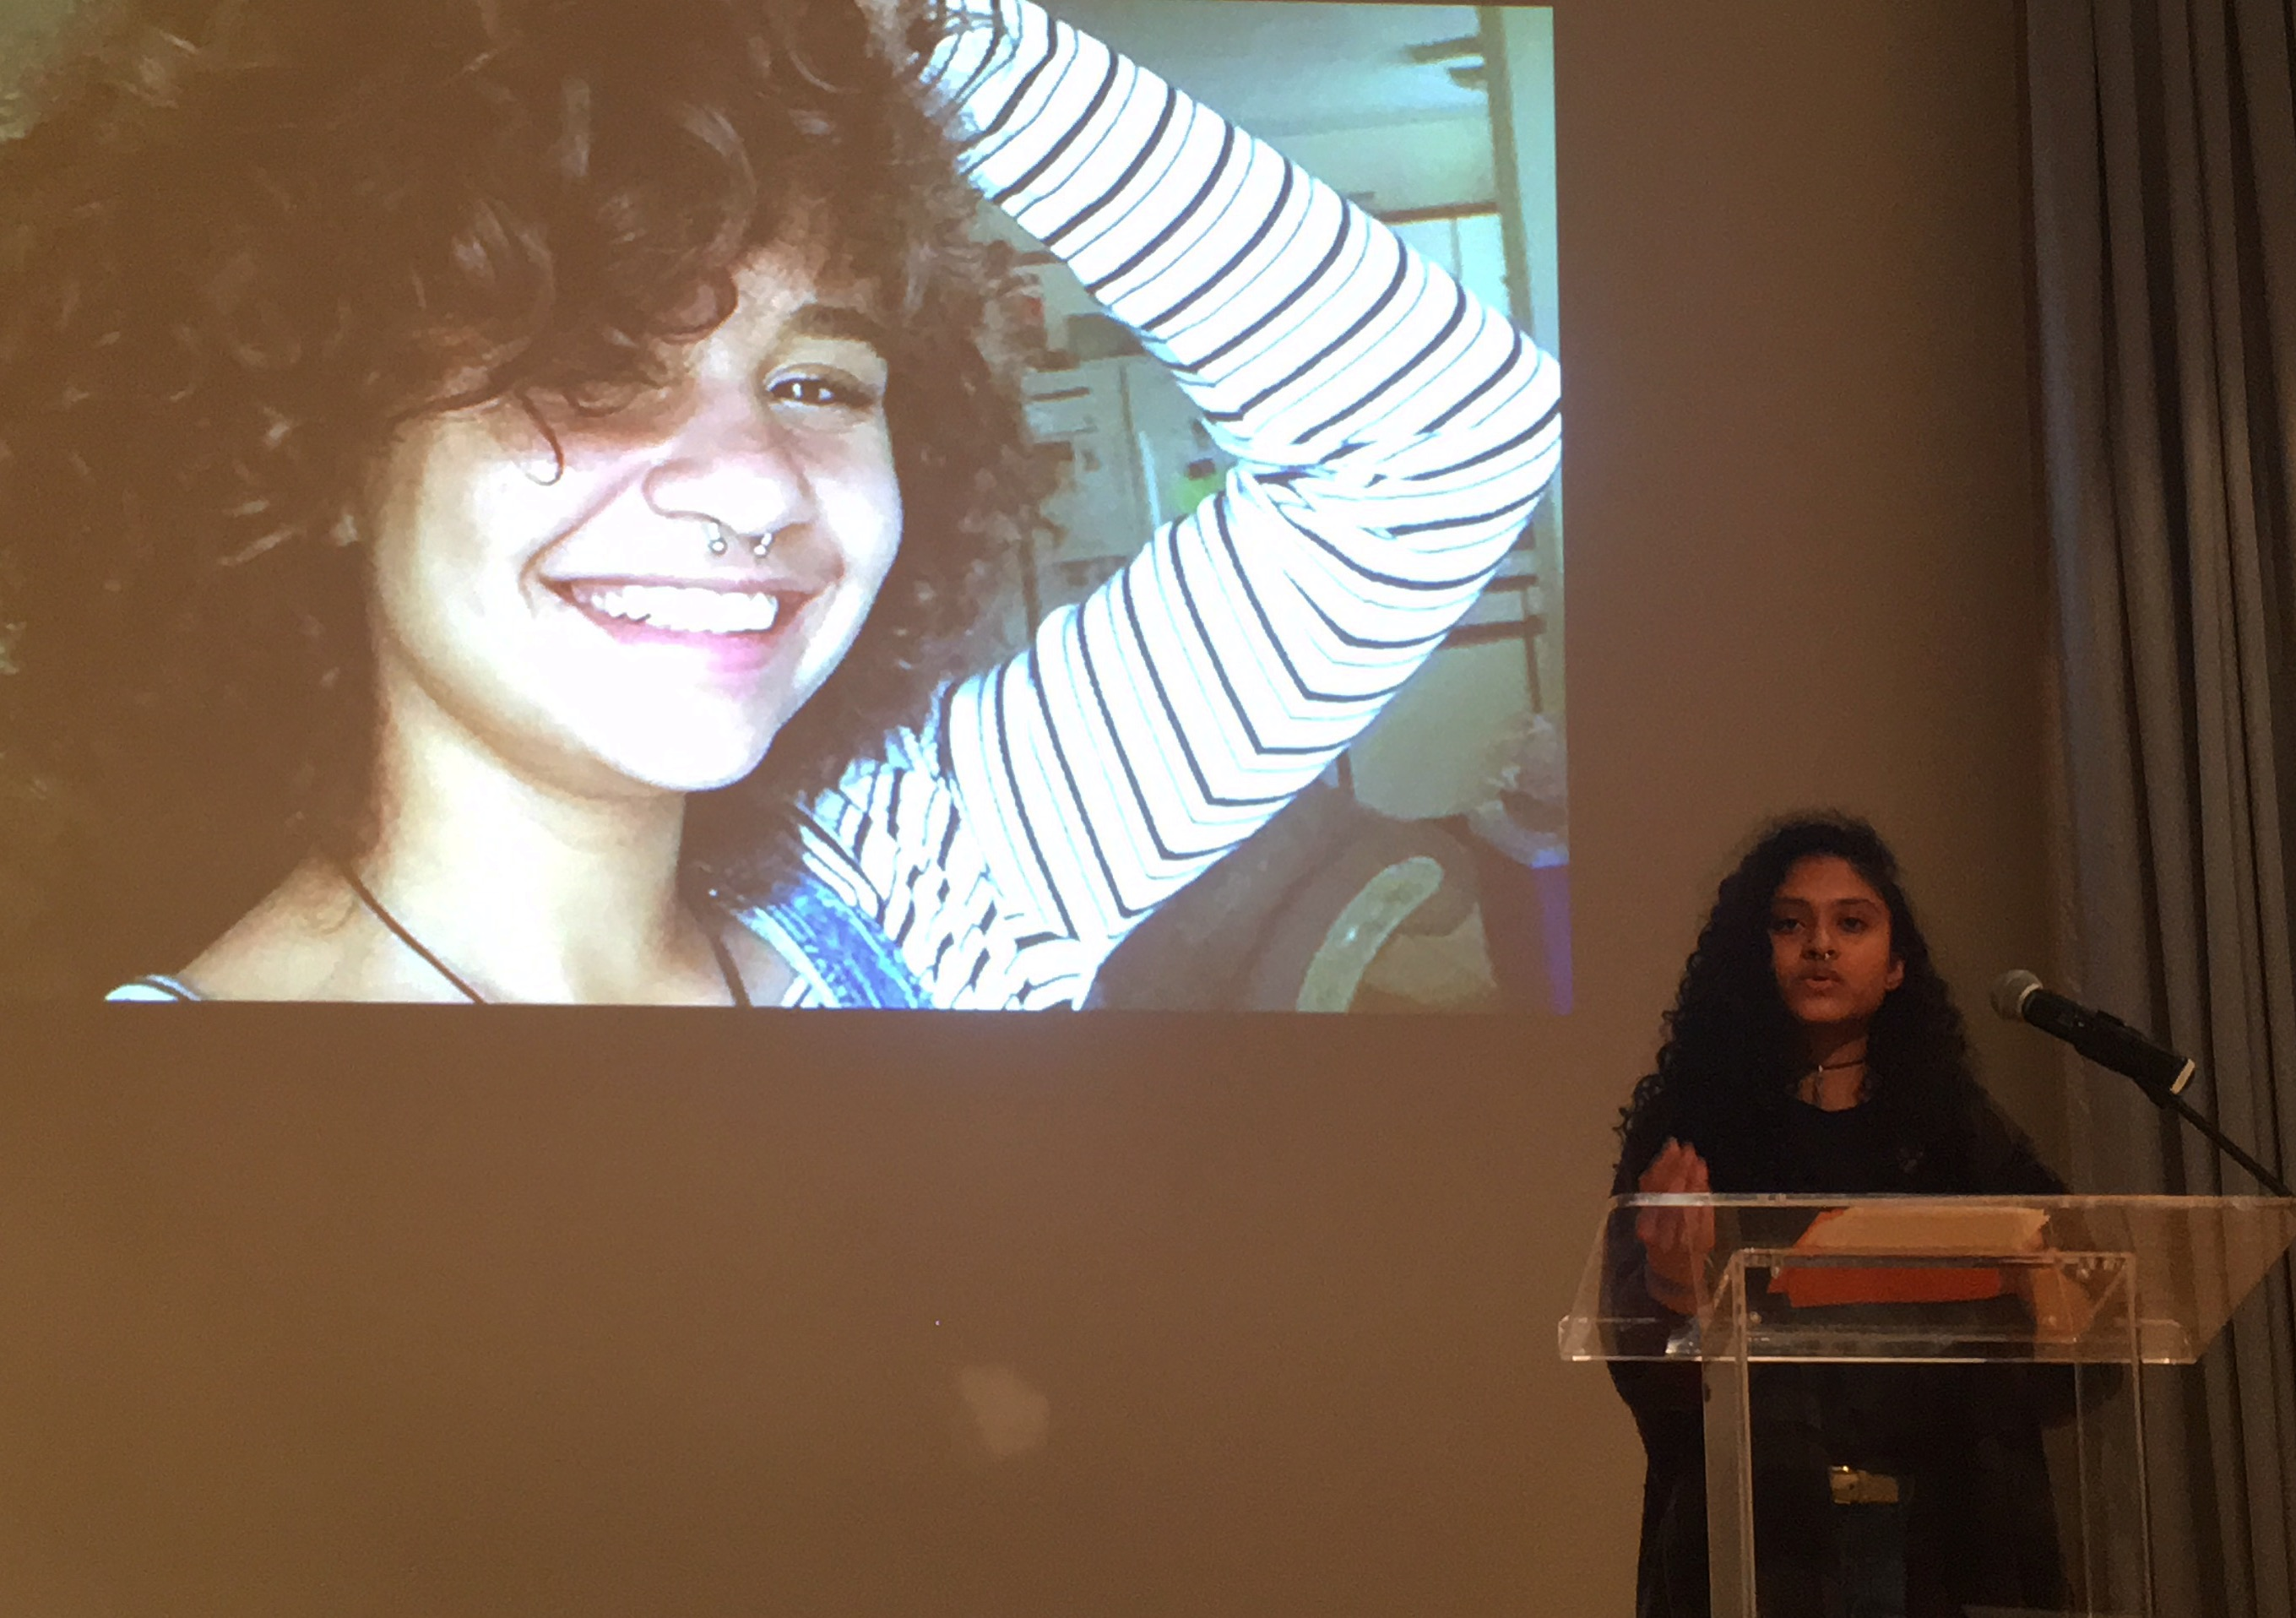 This is a photo of Fatima Dizon, creator of Harlem Lighthouse, purposing her project at The New Museum in 2017. There is a large photo of Maylin Reynoso behind her. Maylin Reynoso was a young woman of color who went missing in 2016 and was found dead later that year. Harlem Lighthouse was created in Maylin's legacy.